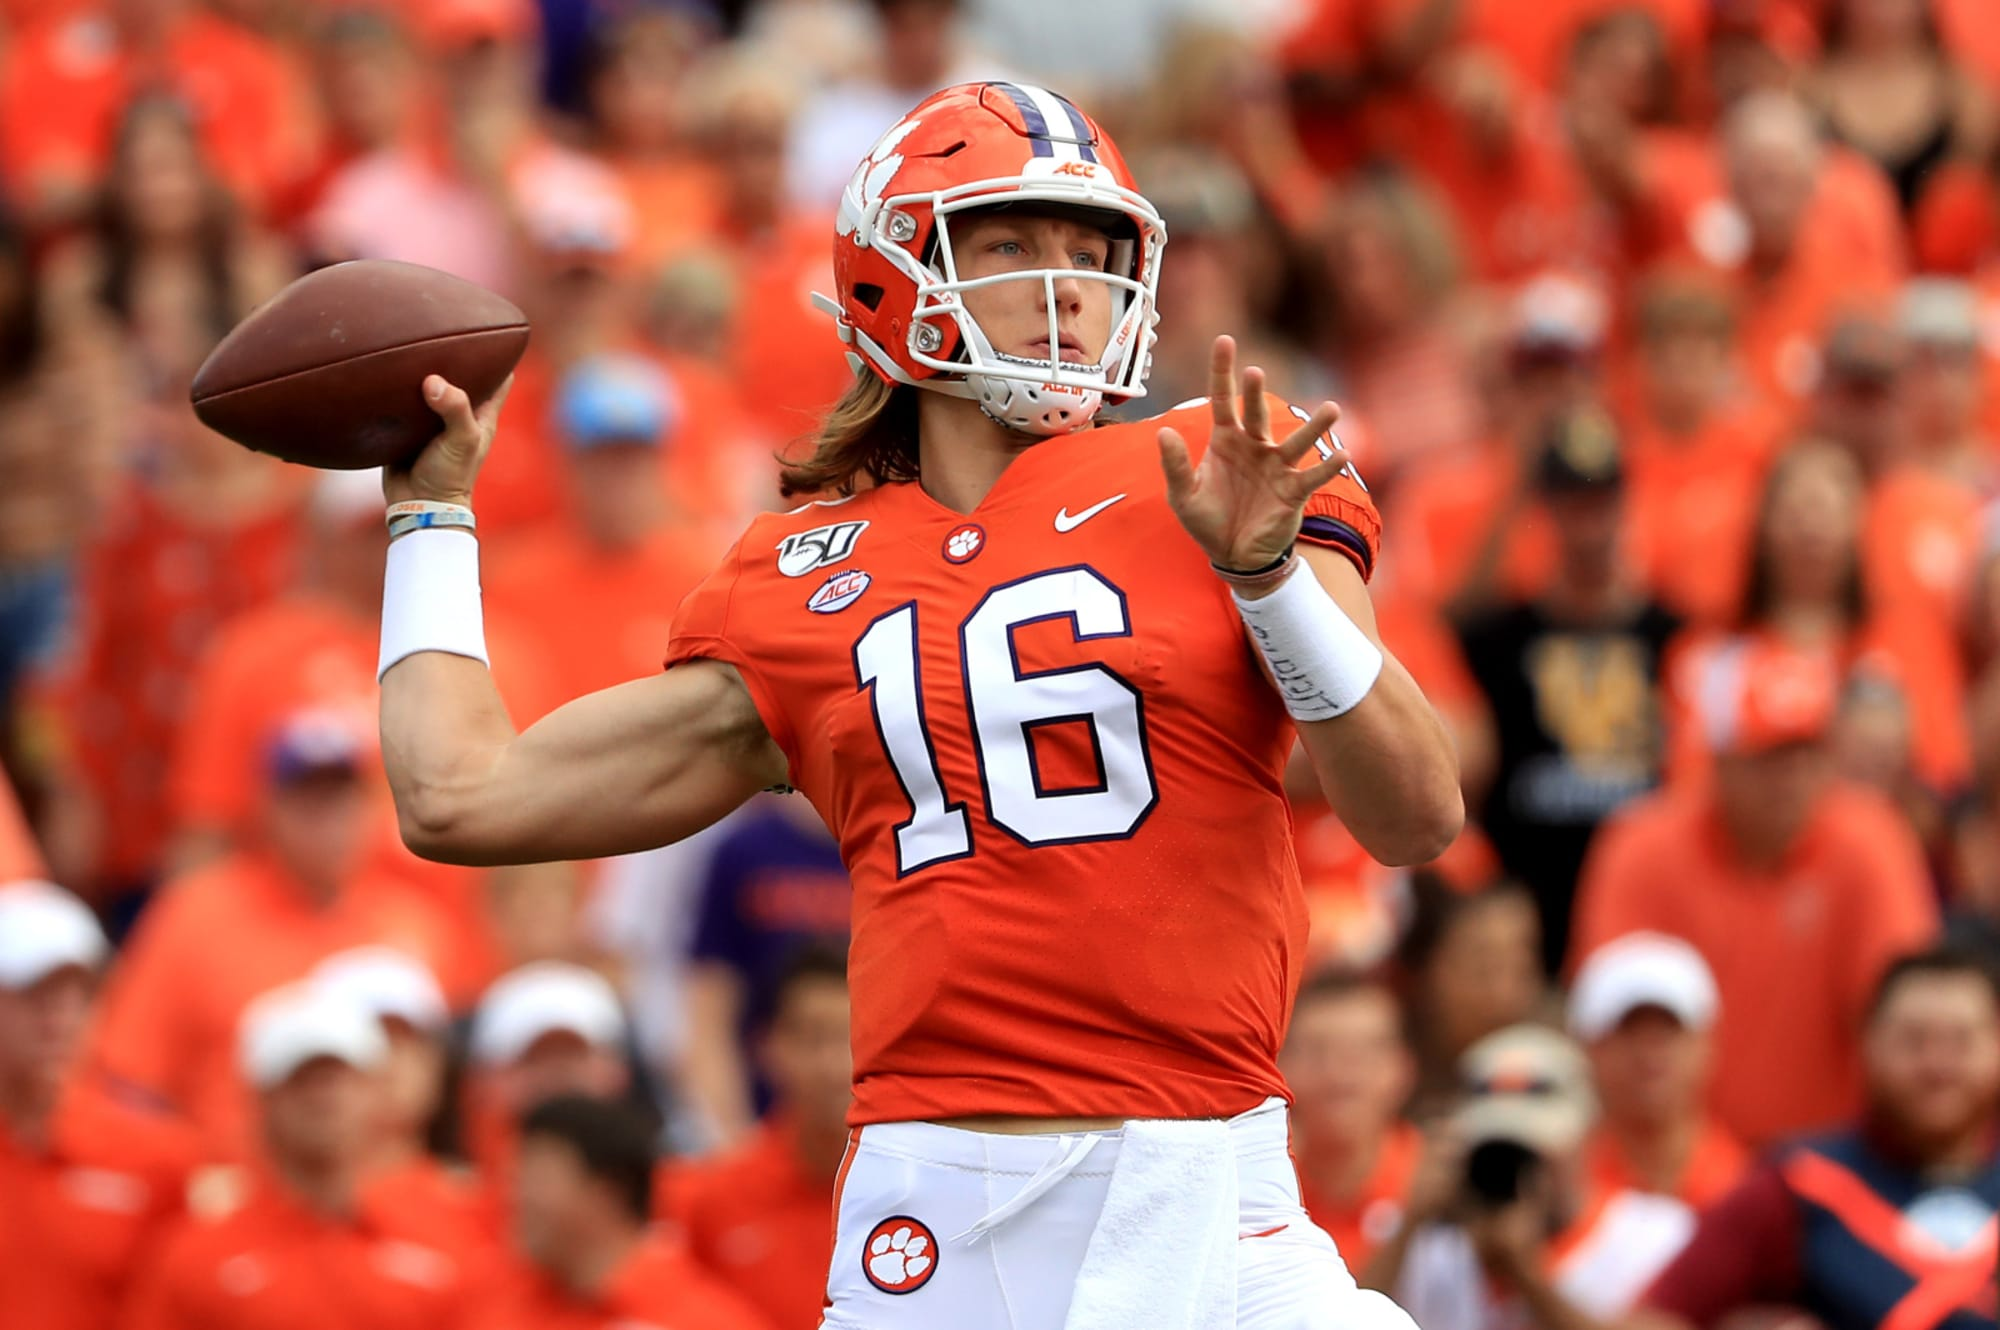 Clemson Football All Orange Uniform Is The Best In College Football History